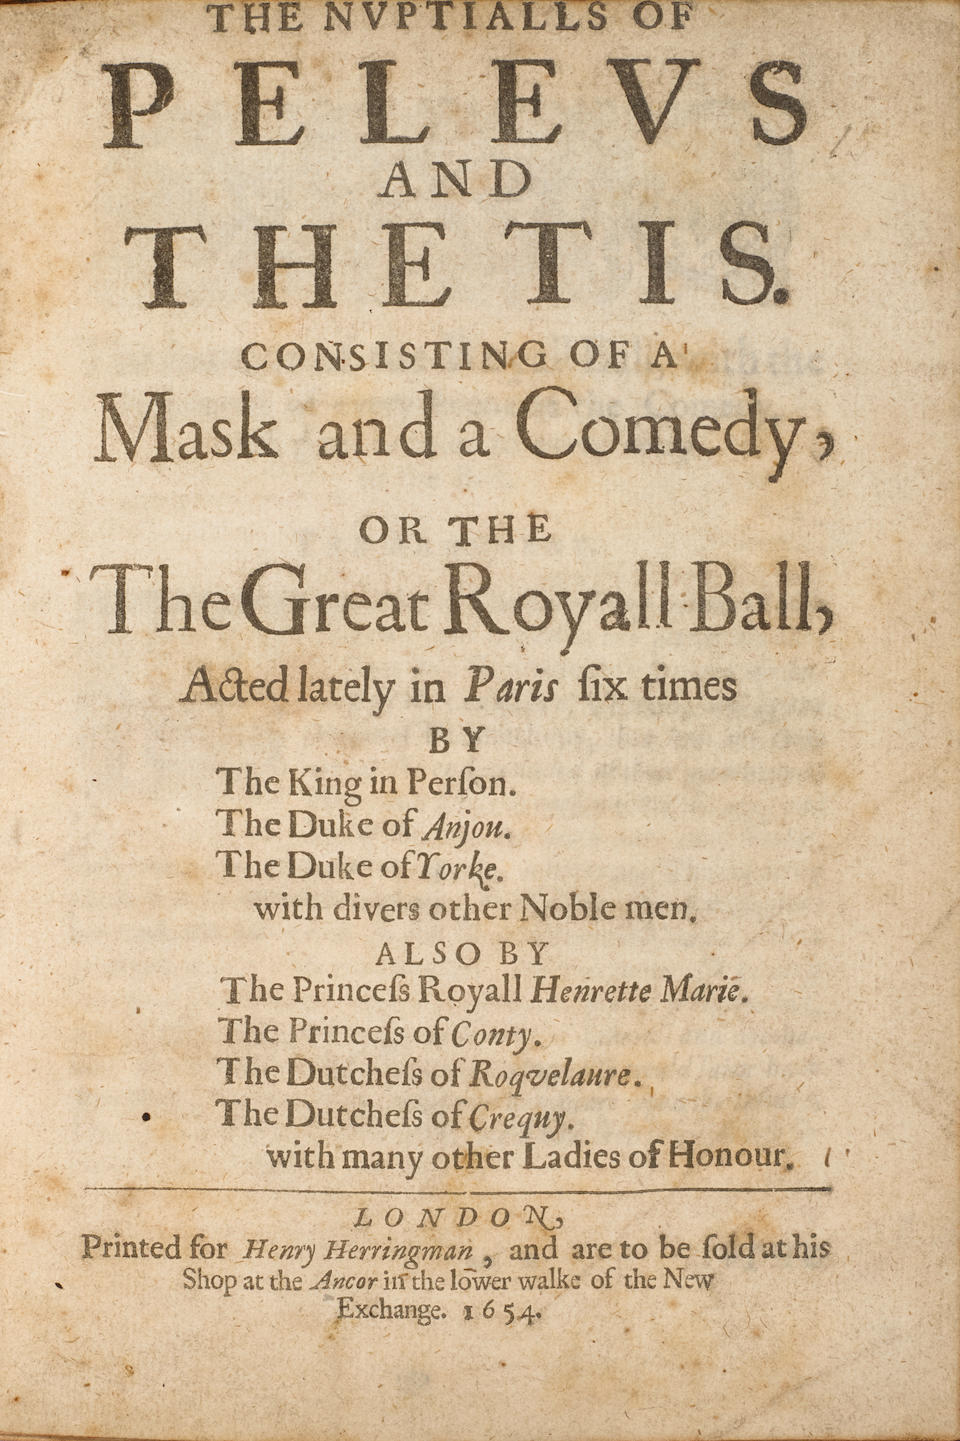 HOWELL, JAMES. 1594-1666. The Nuptials of Peleus and Thetis. Consisting of a Mask and a Comedy. London: Henry Herringman, 1654.